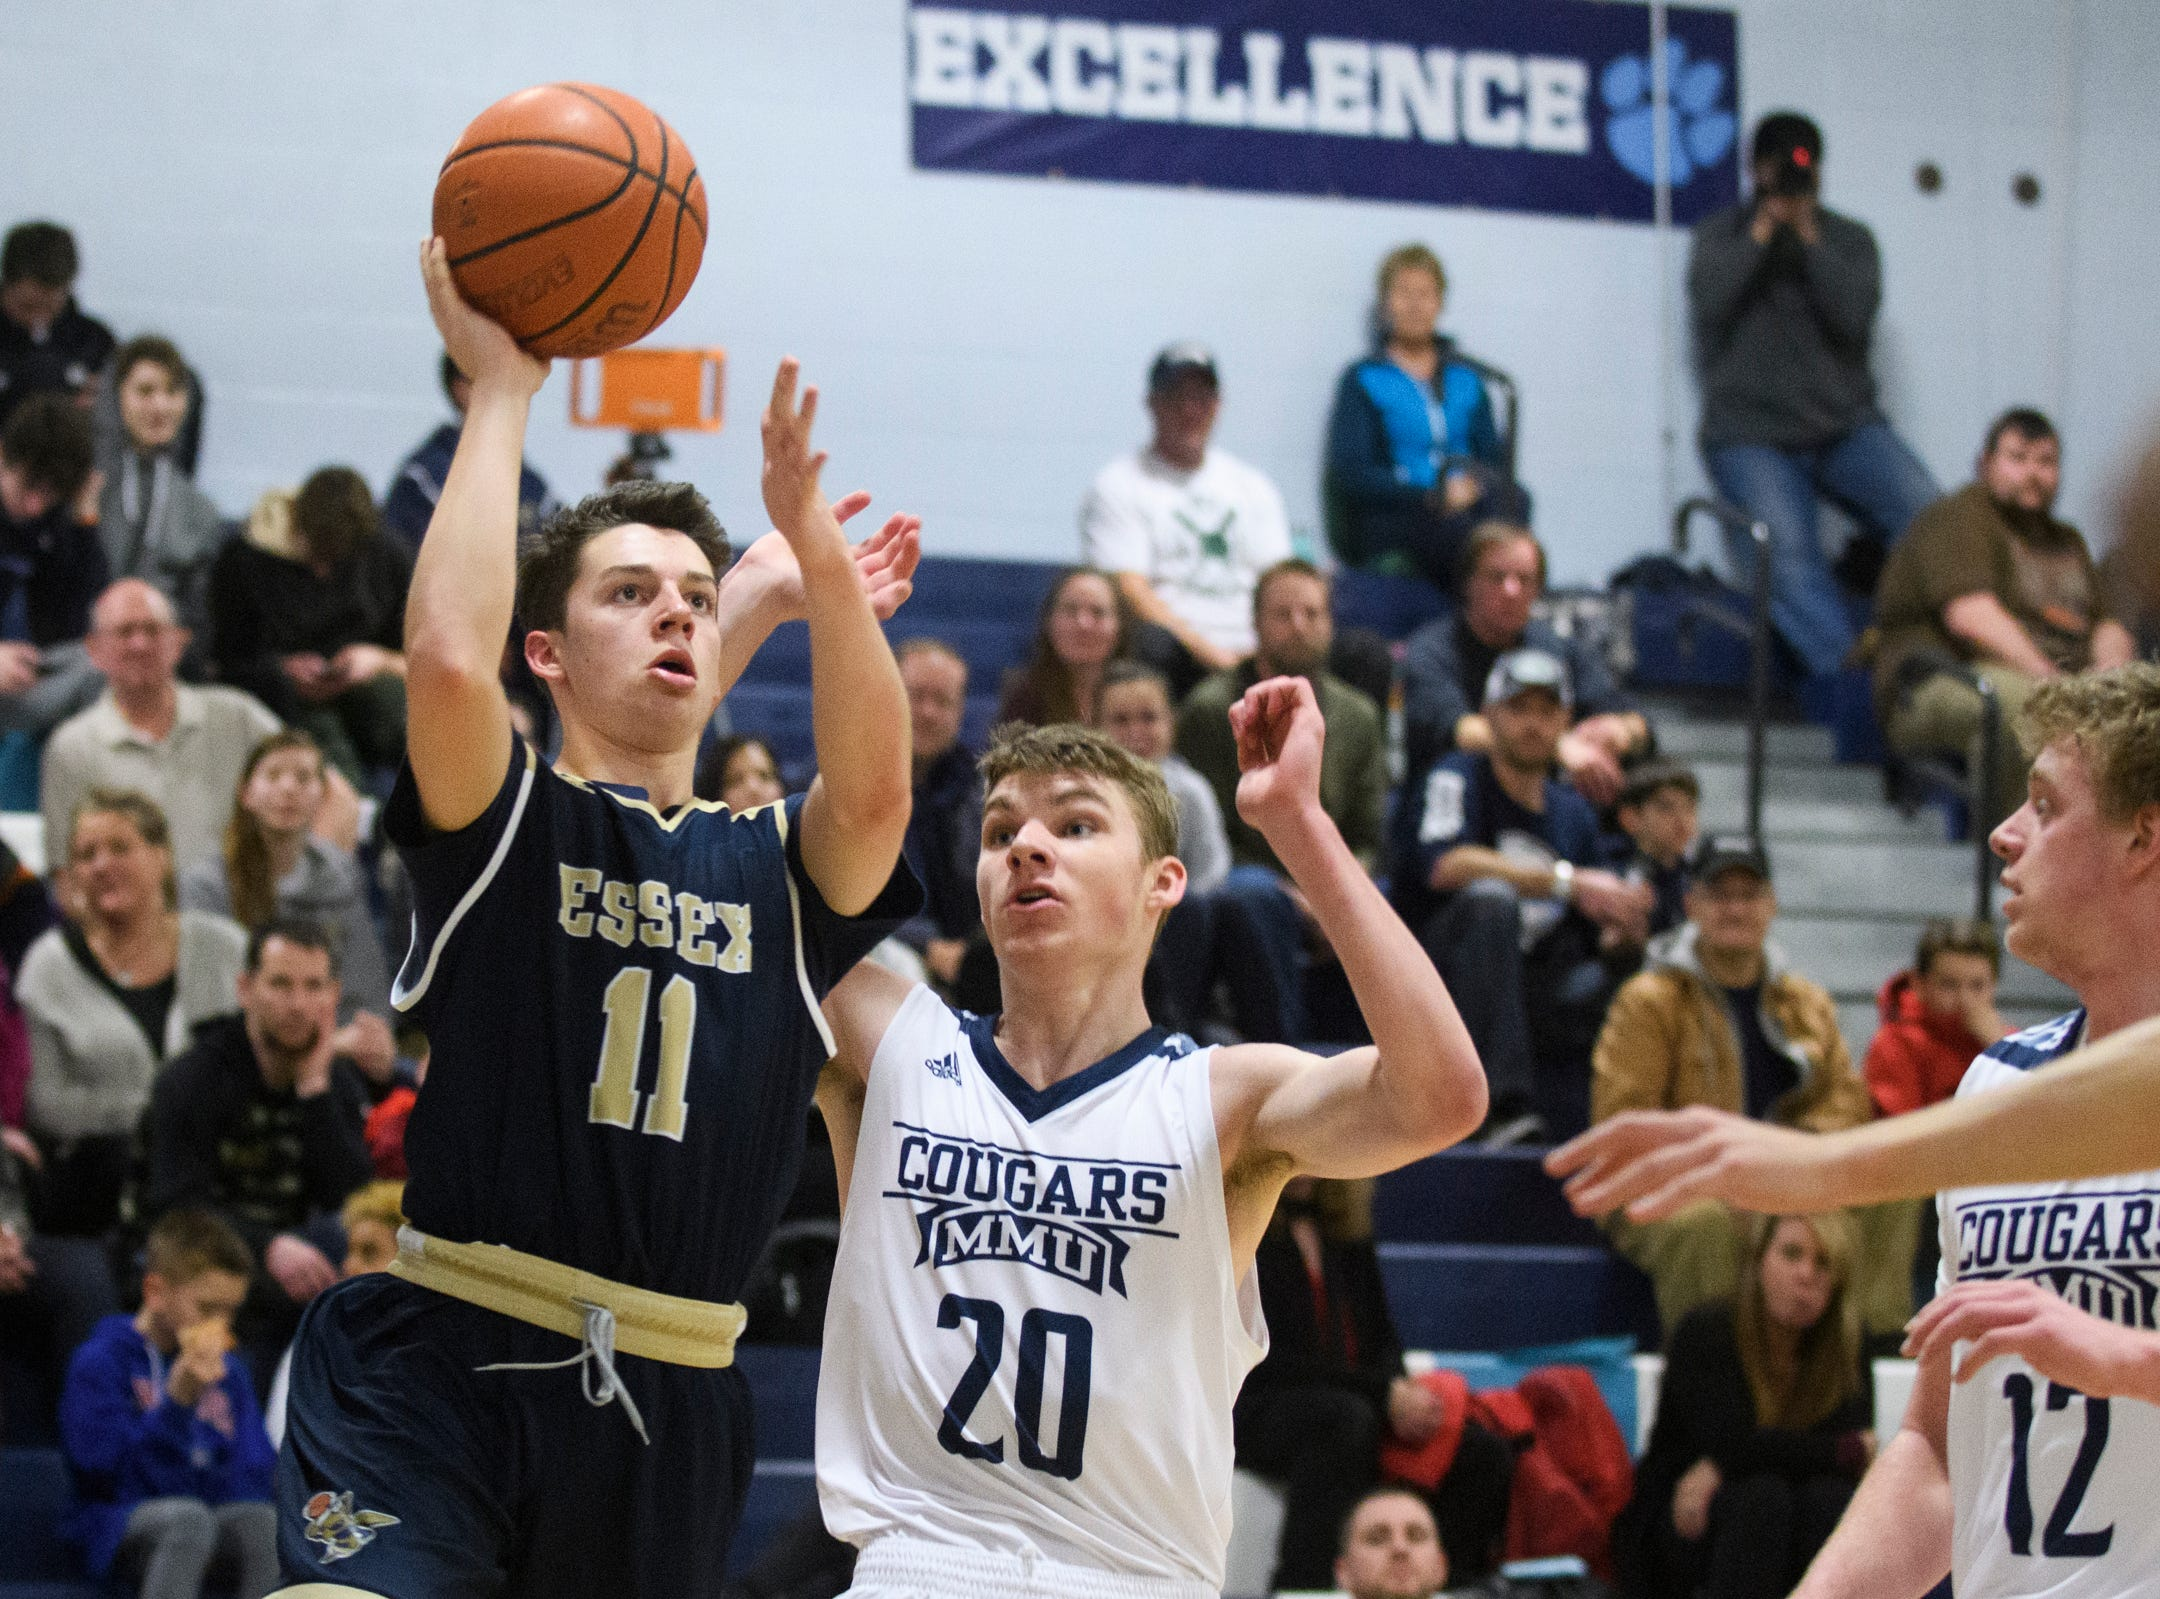 Essex's Parker Whitney (11) leaps past MMU's Connor Philbrick (20) for a lay up during the boys basketball game between the Essex Hornets and the Mount Mansfield Cougars at MMU High School on Wednesday night February 13, 2019 in Jericho, Vermont.